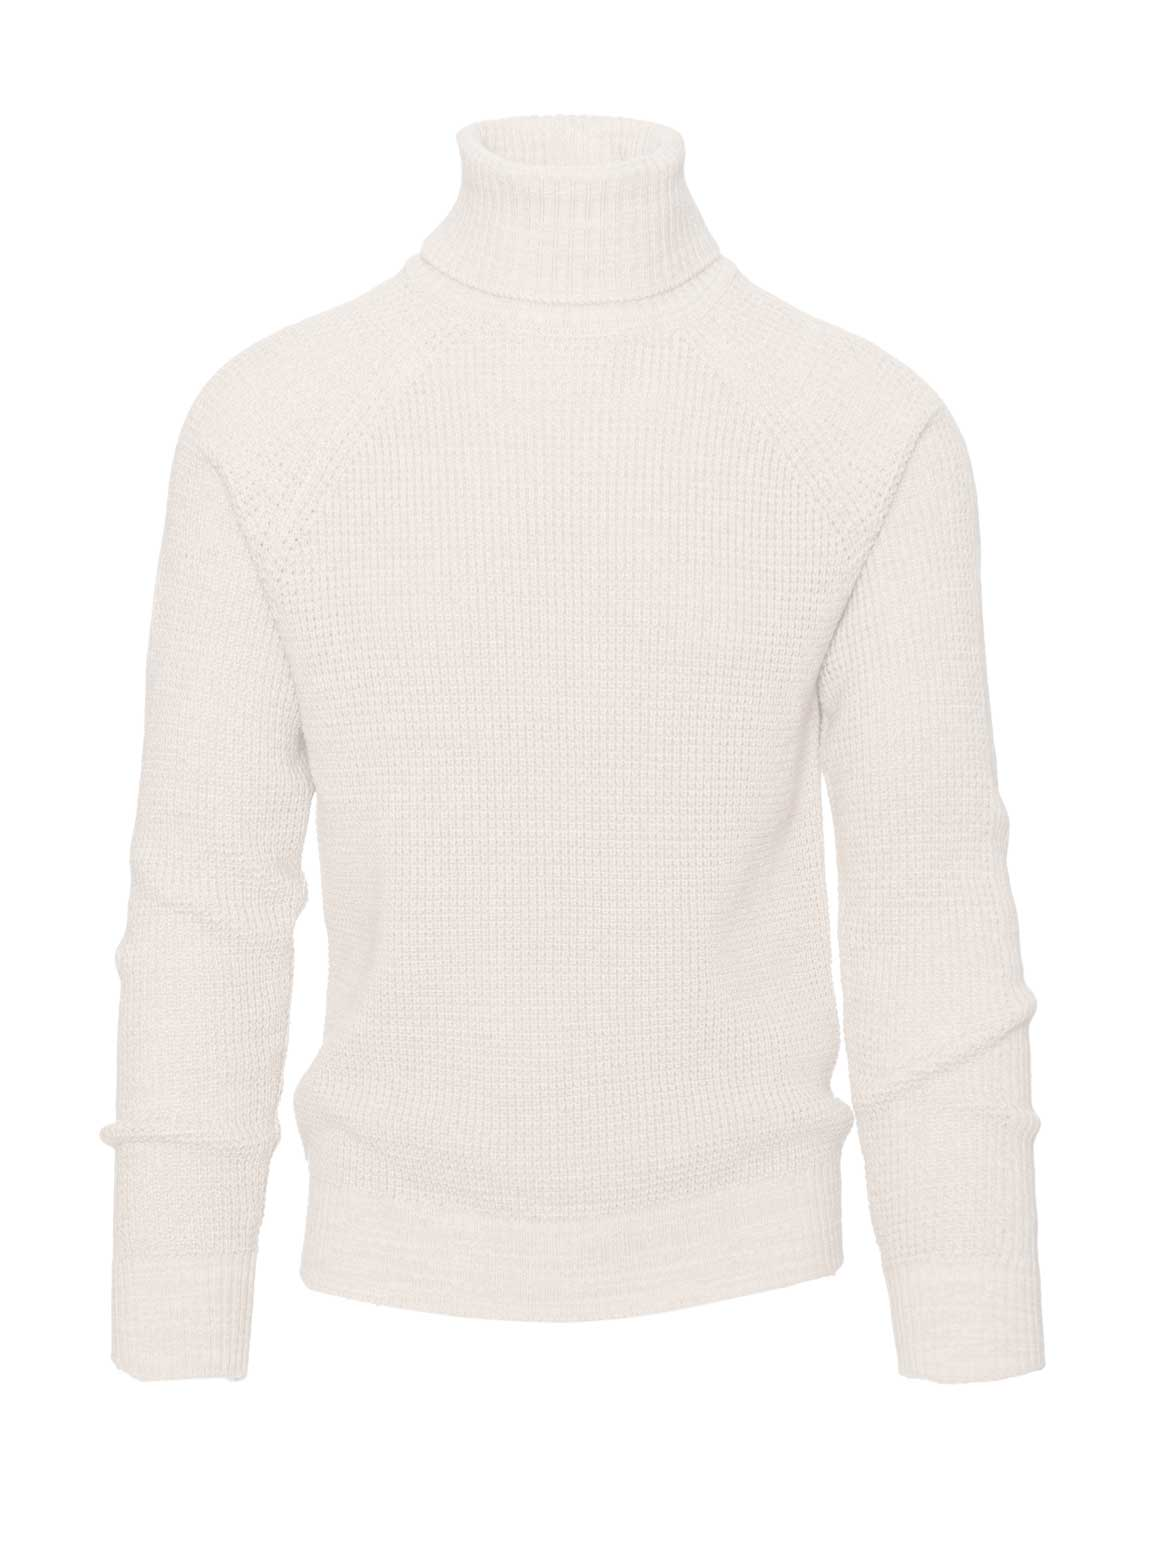 Turtleneck - Cream